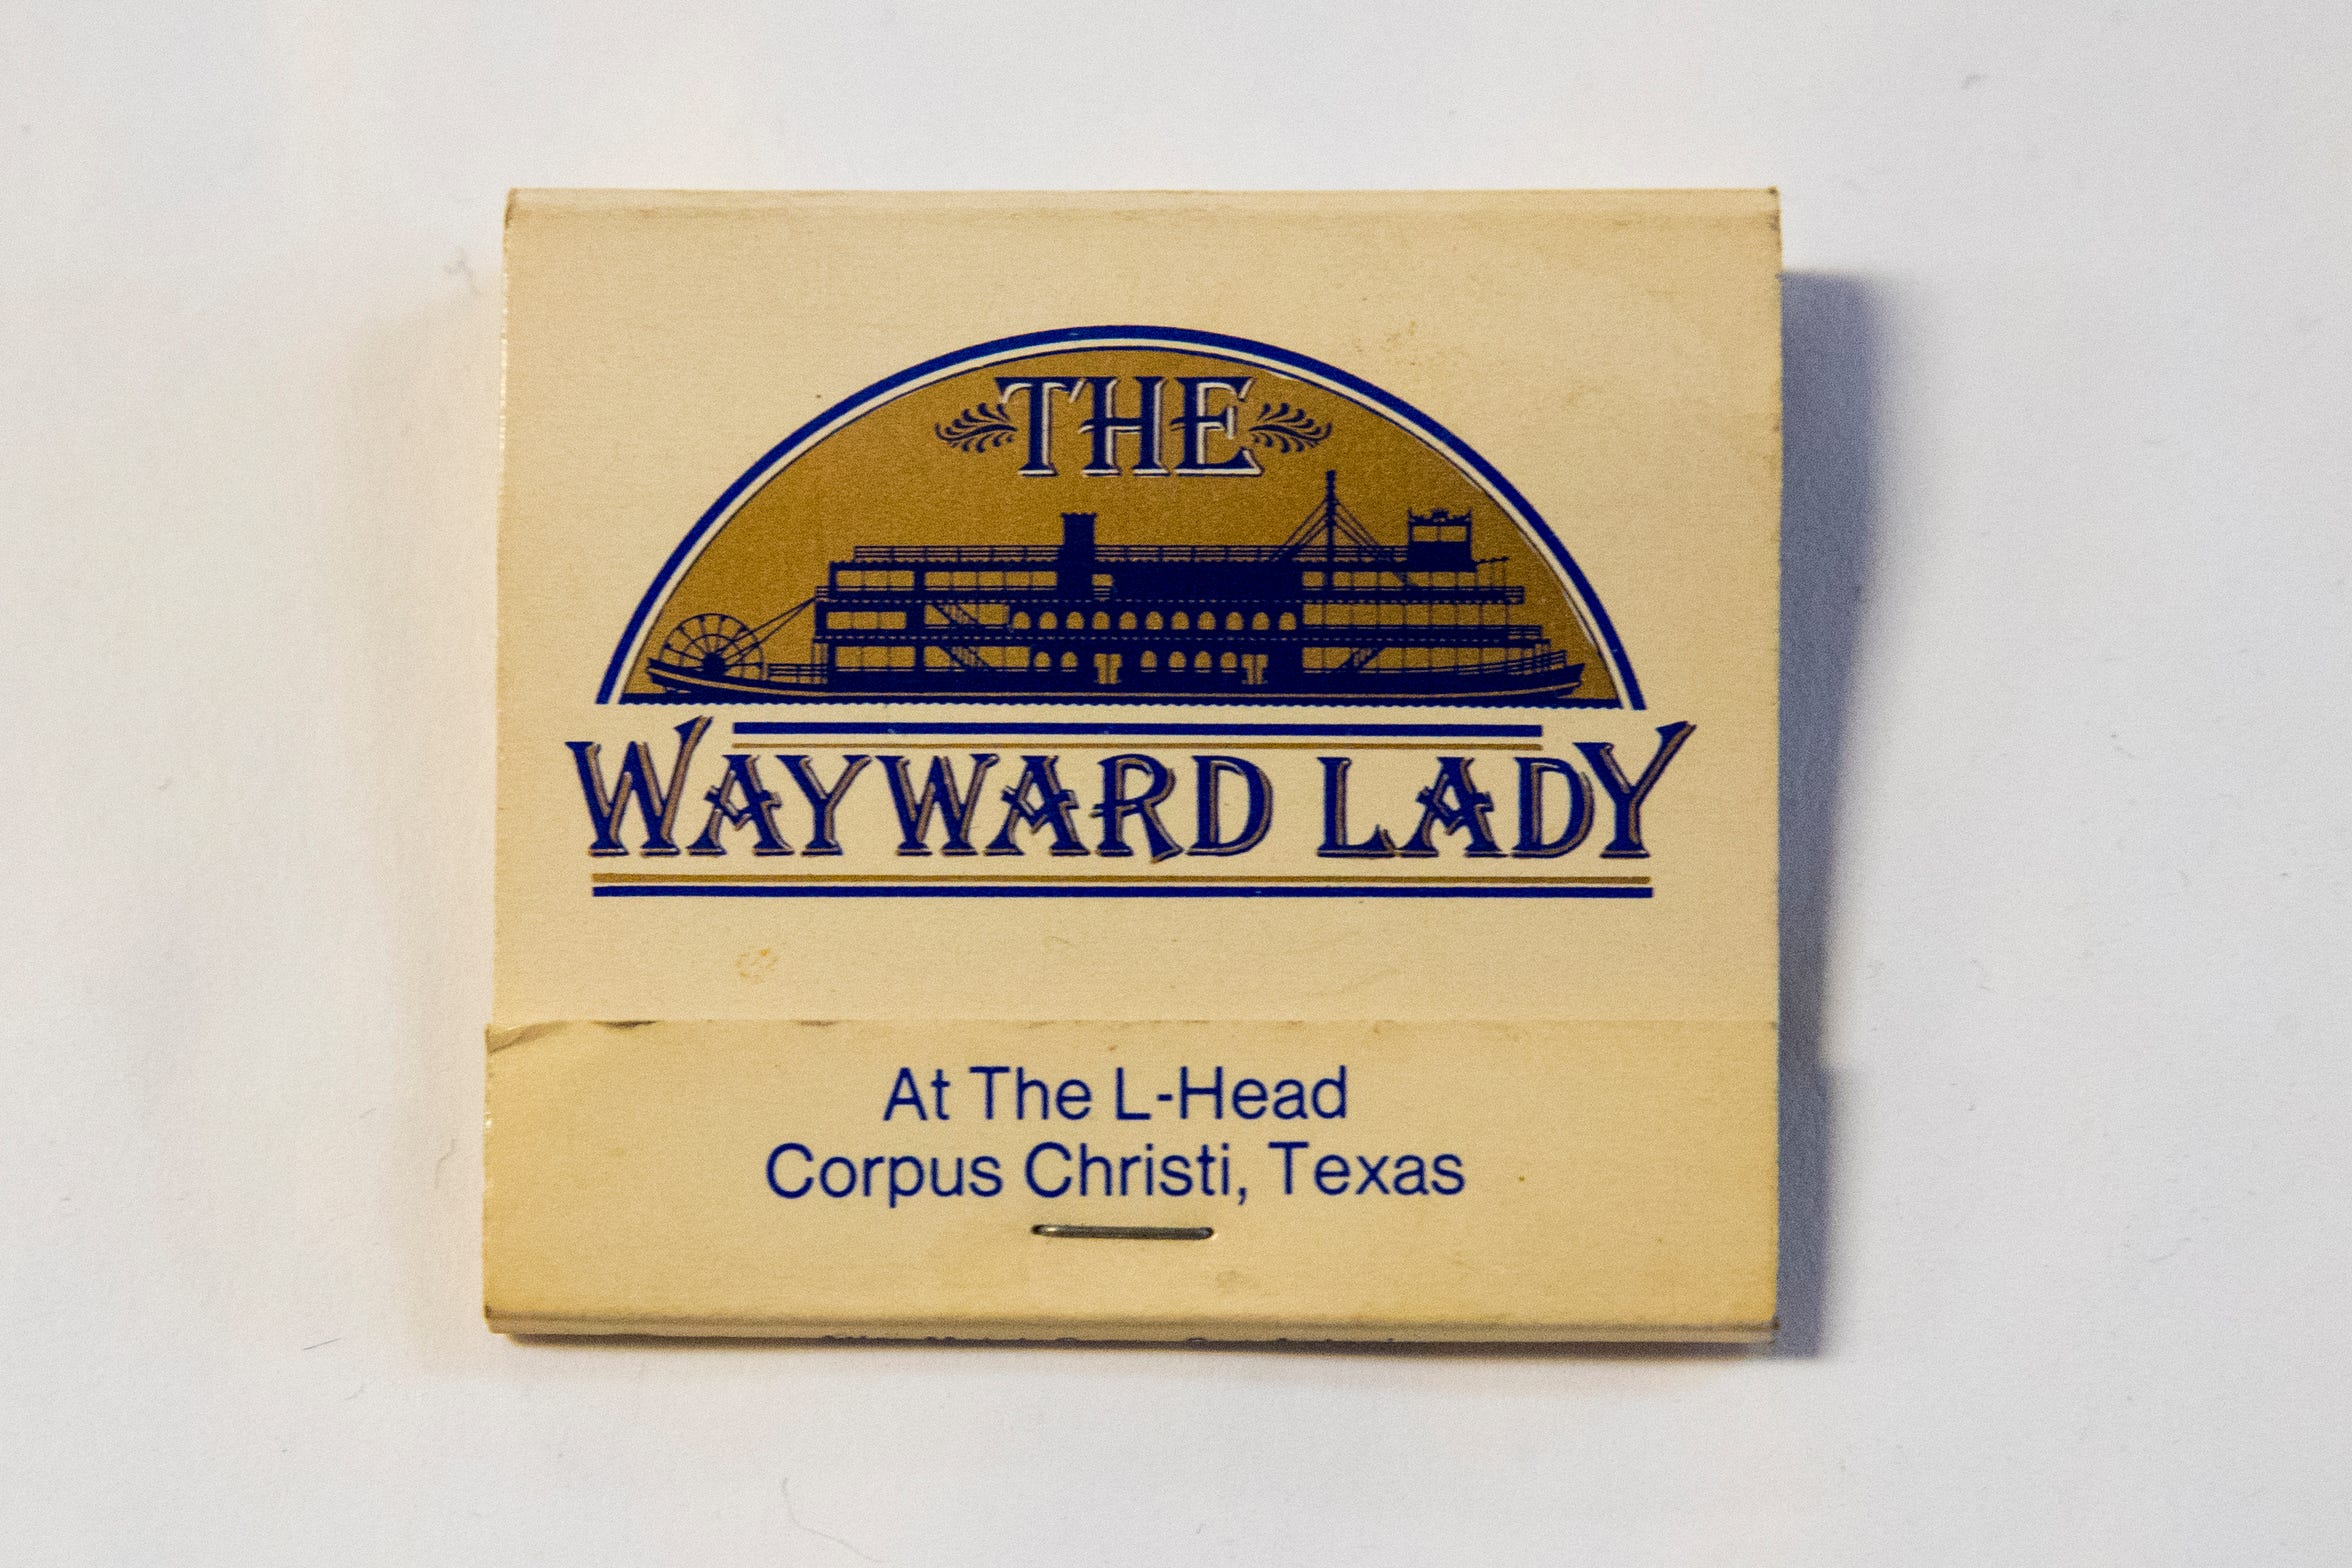 The Wayward Lady was a floating restaurant designed to look like a riverboat. It was docked at the Coopers Alley L-Head on the Corpus Christi Marina in the 1980s.